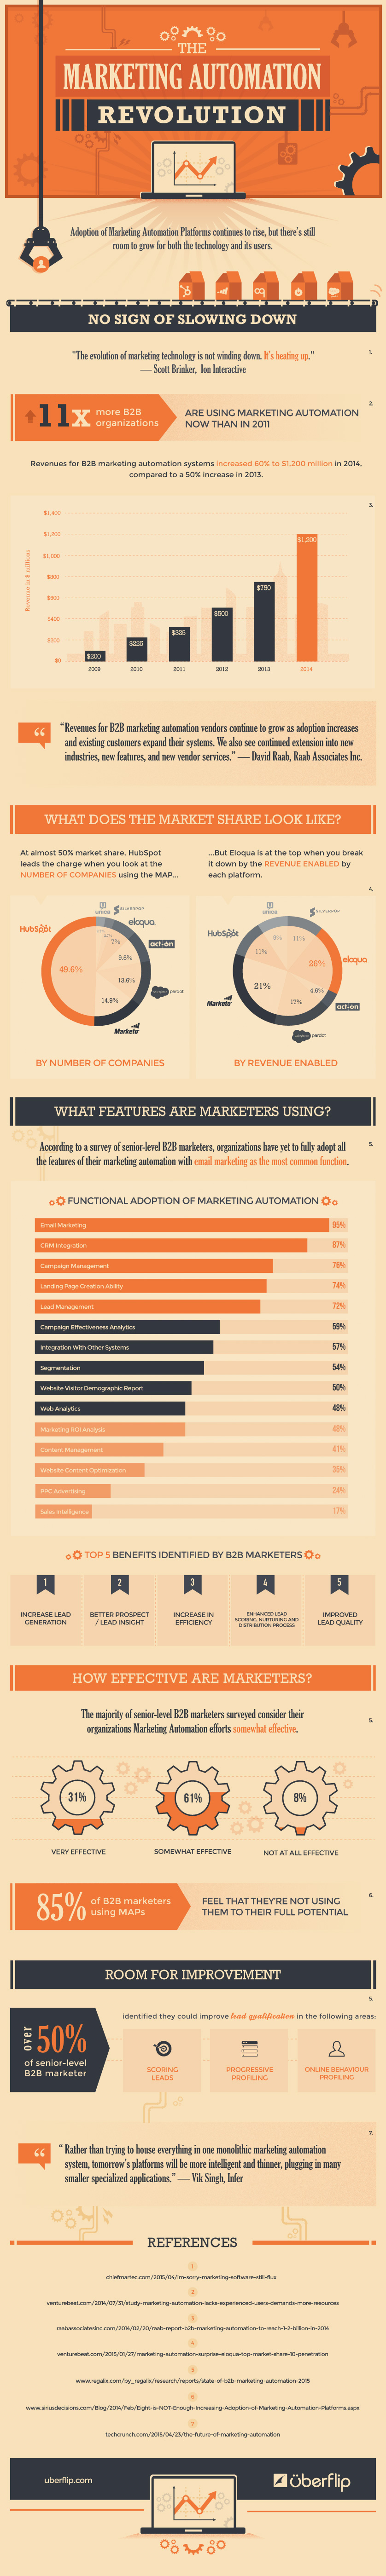 A collection of powerful marketing automation stats such as 11 times more B2B organizations are using marketing automation.